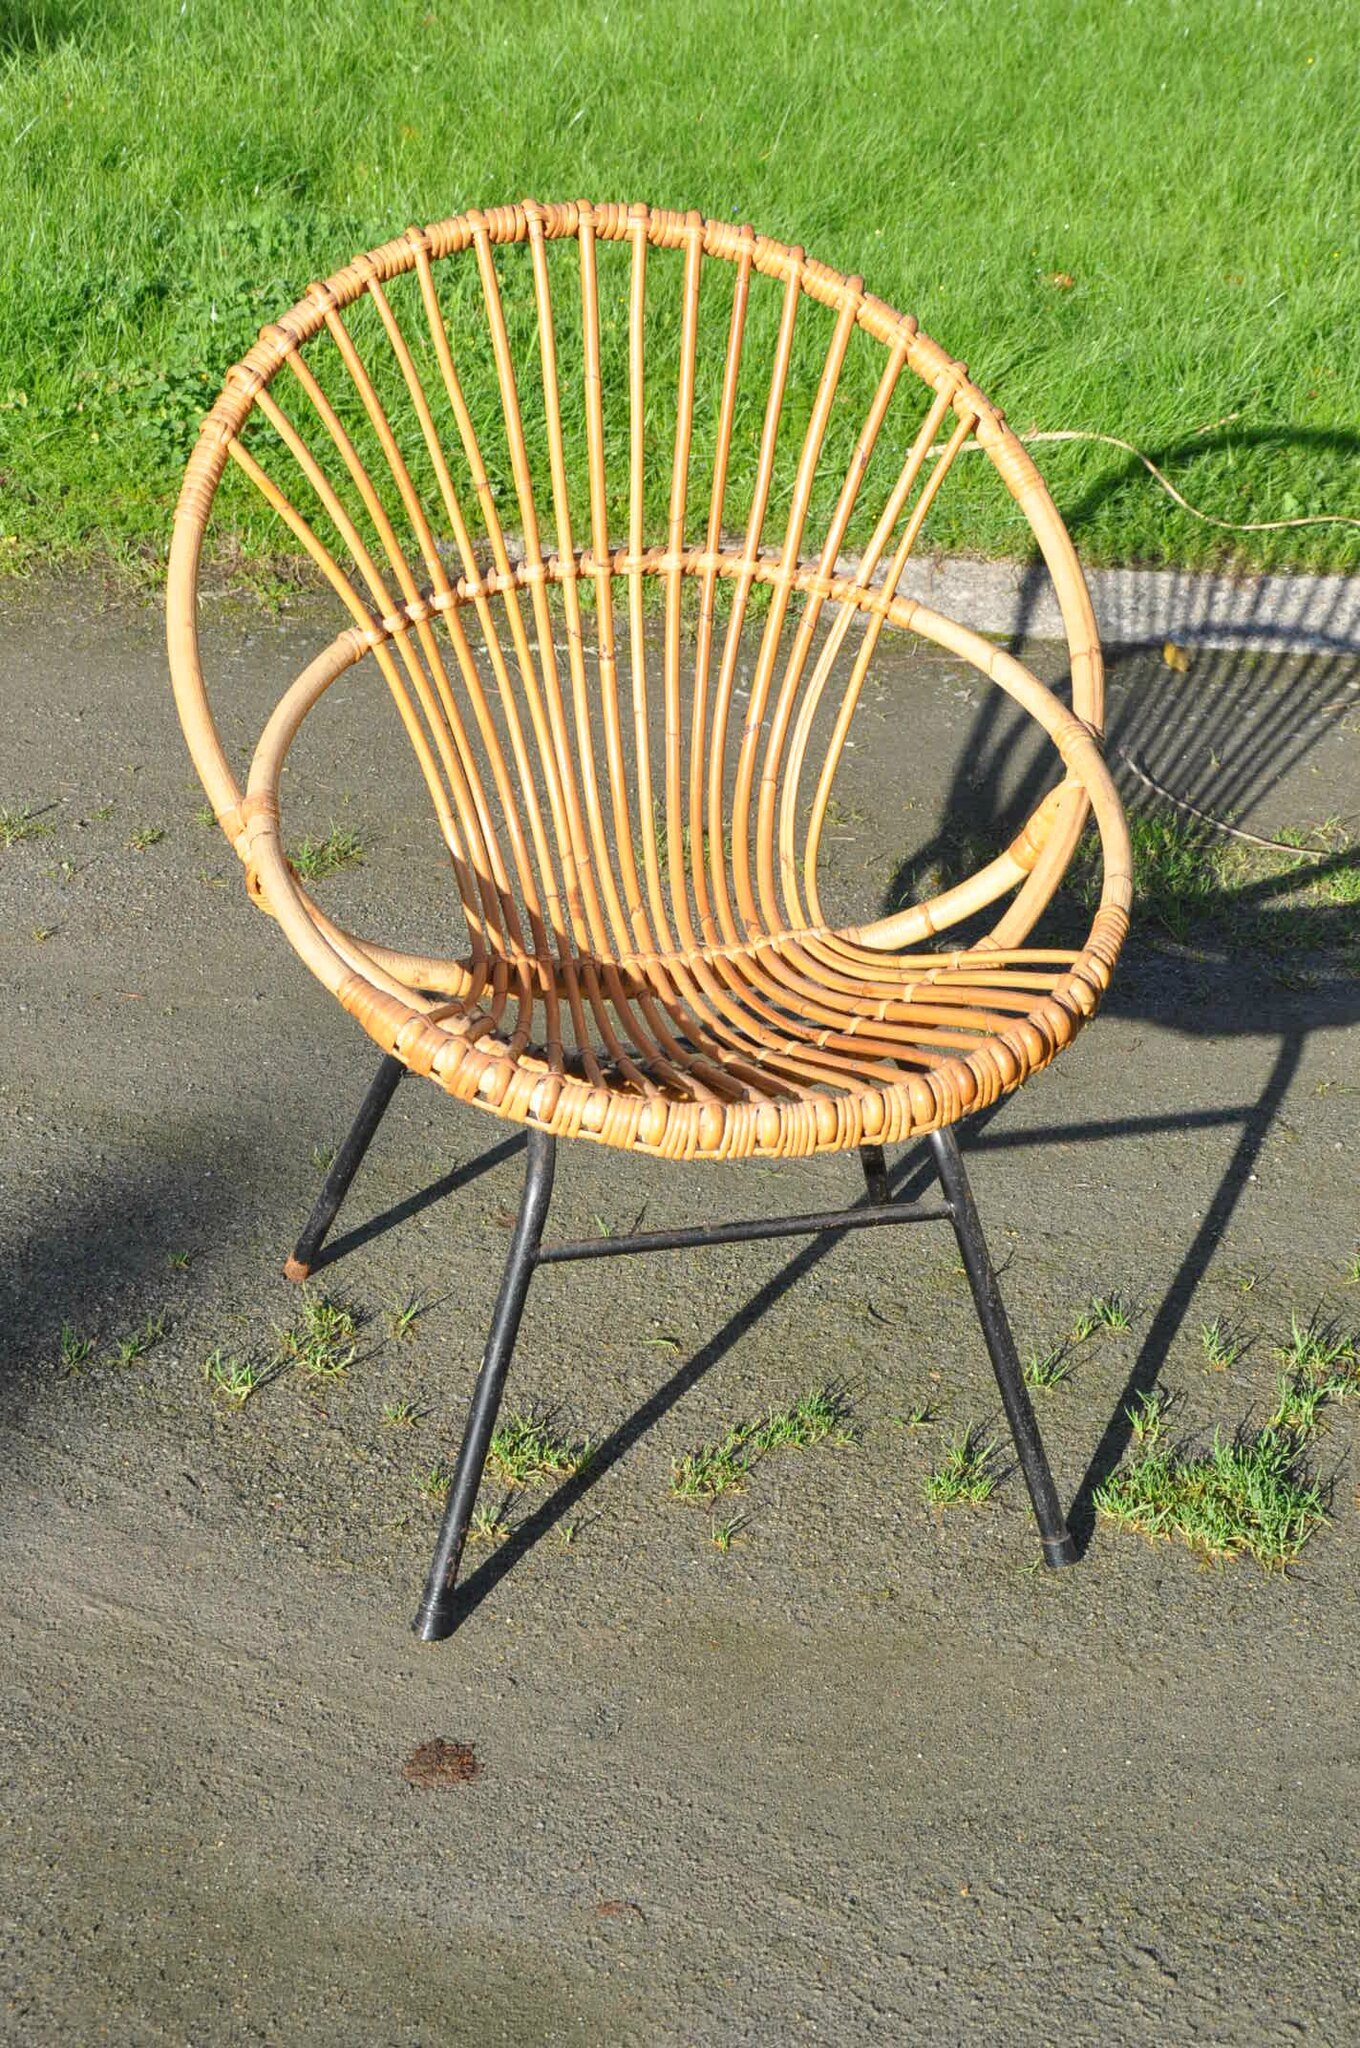 Fauteuils Coquille Fauteuil Coquille En Rotin Annees 50 Article Vendu